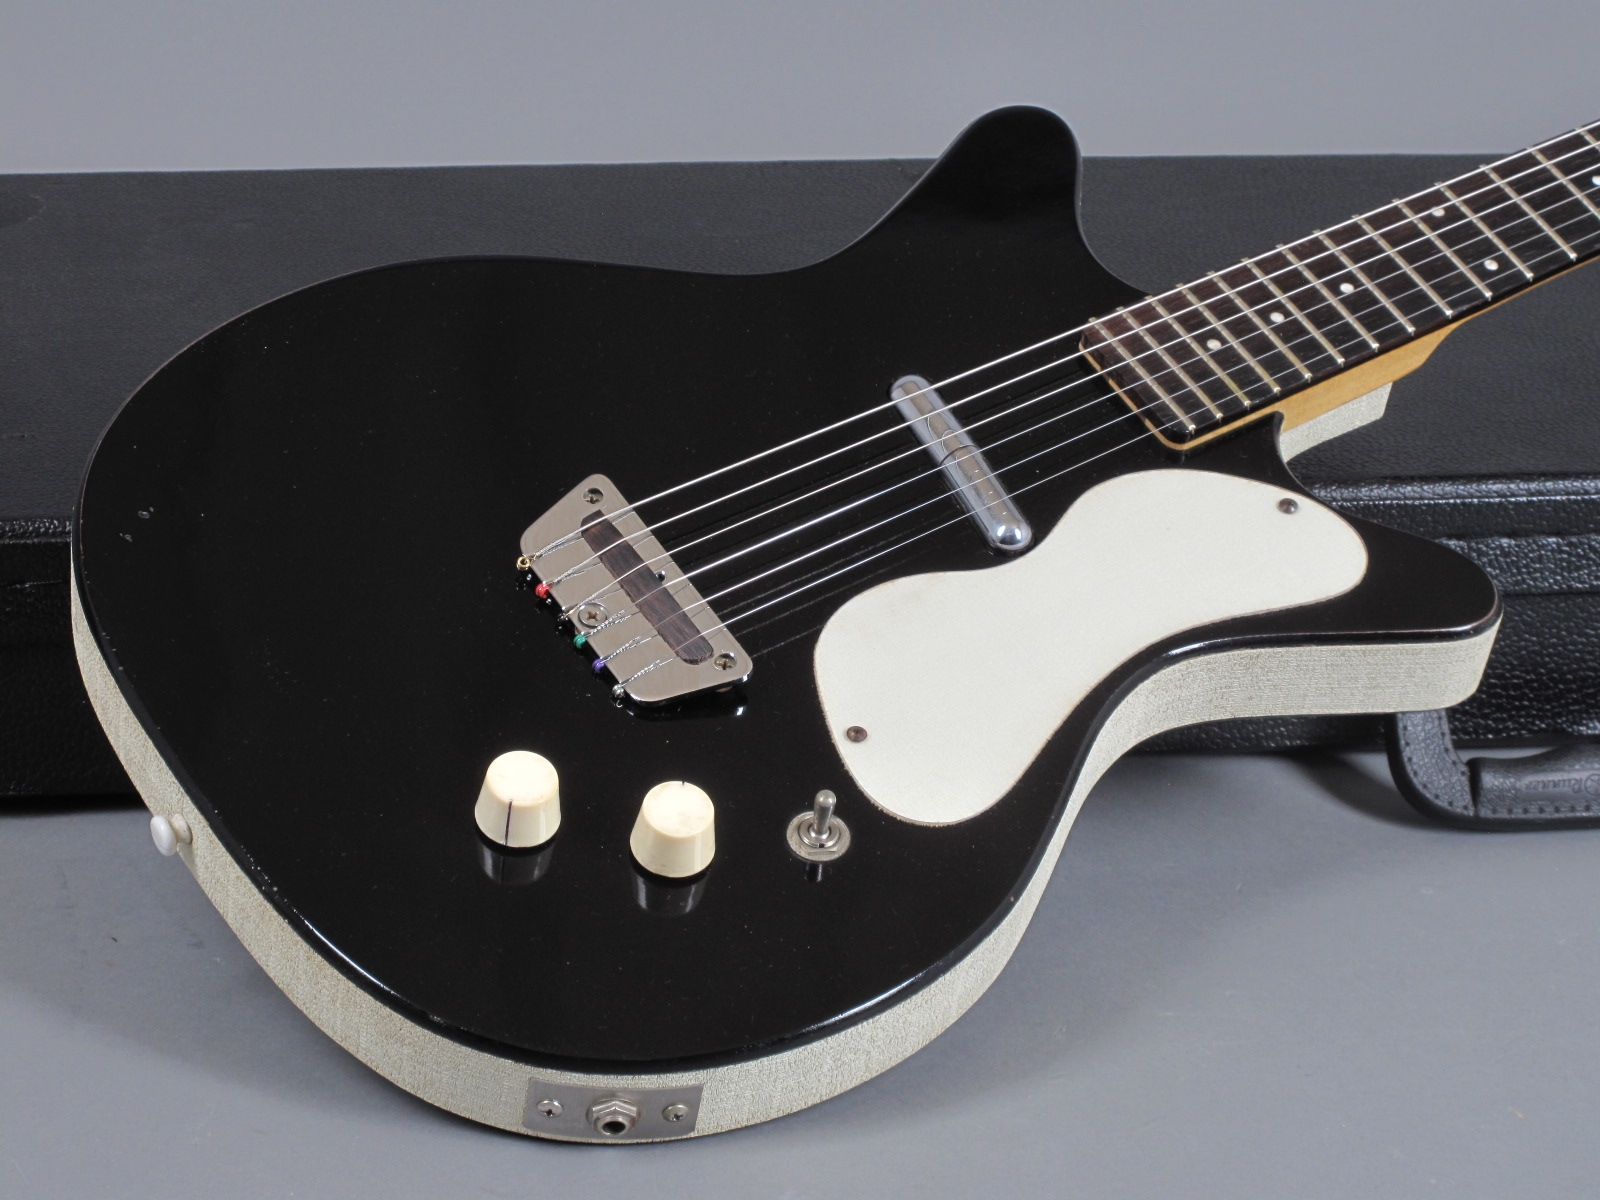 https://guitarpoint.de/app/uploads/products/1959-danelectro-3011-standard-doublecut-black/1959-Danelectro-DC-2-Black_17.jpg